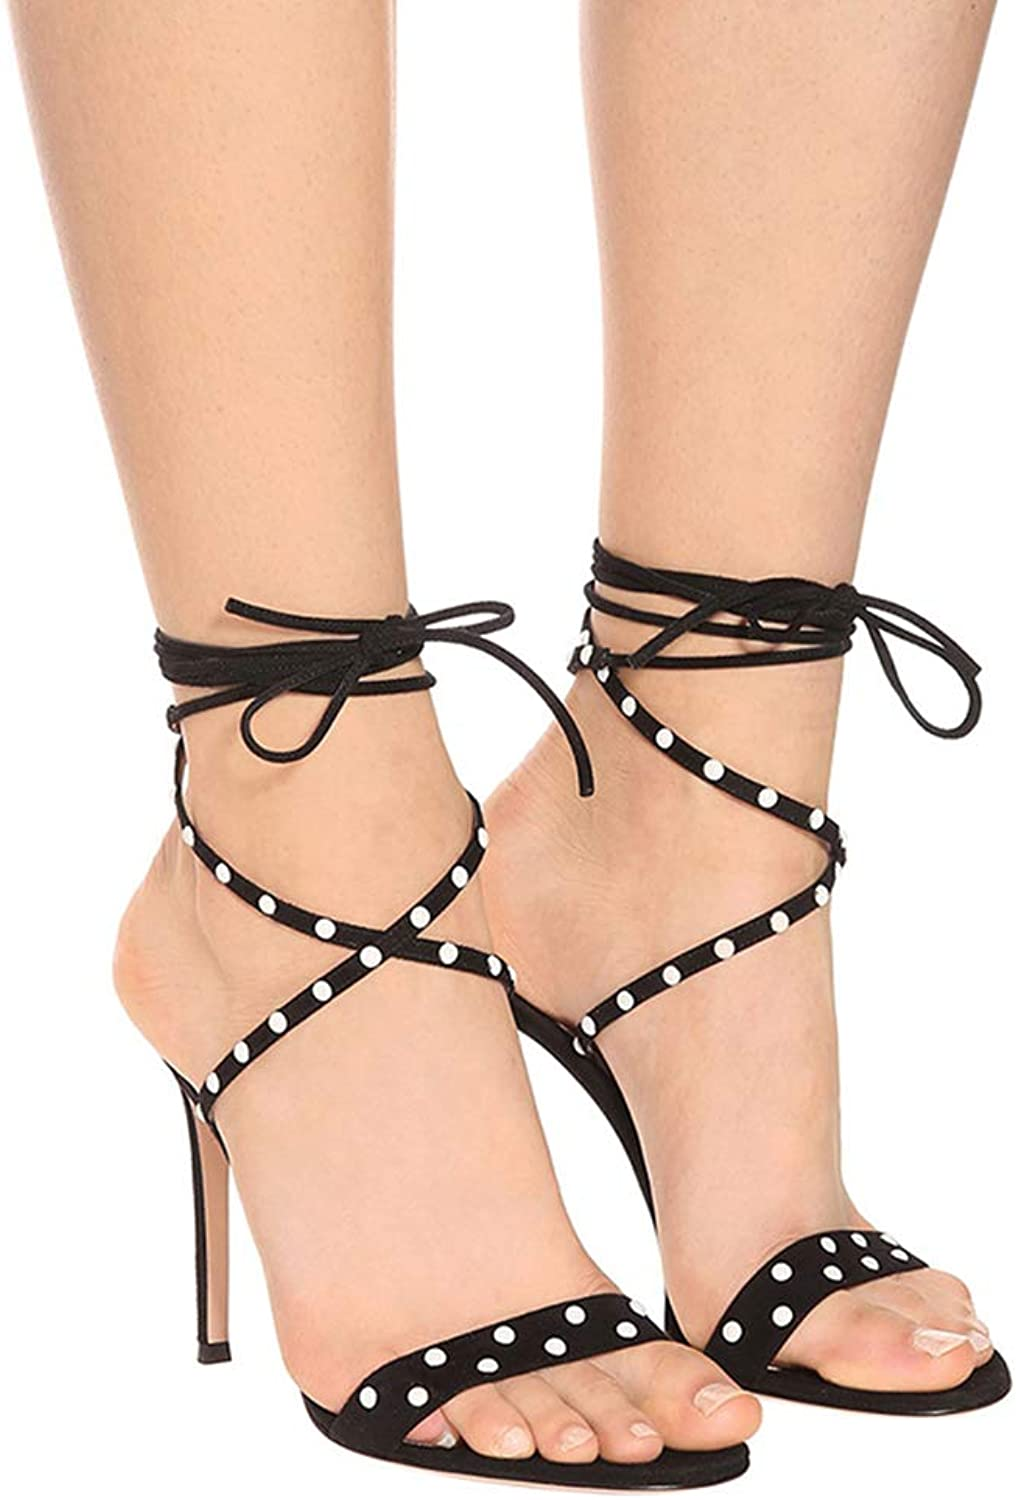 Women's Strap Design High Heel Sandals Open Toe Sexy Black Sandals for Wedding, Evening Party, Prom, Cocktail Party